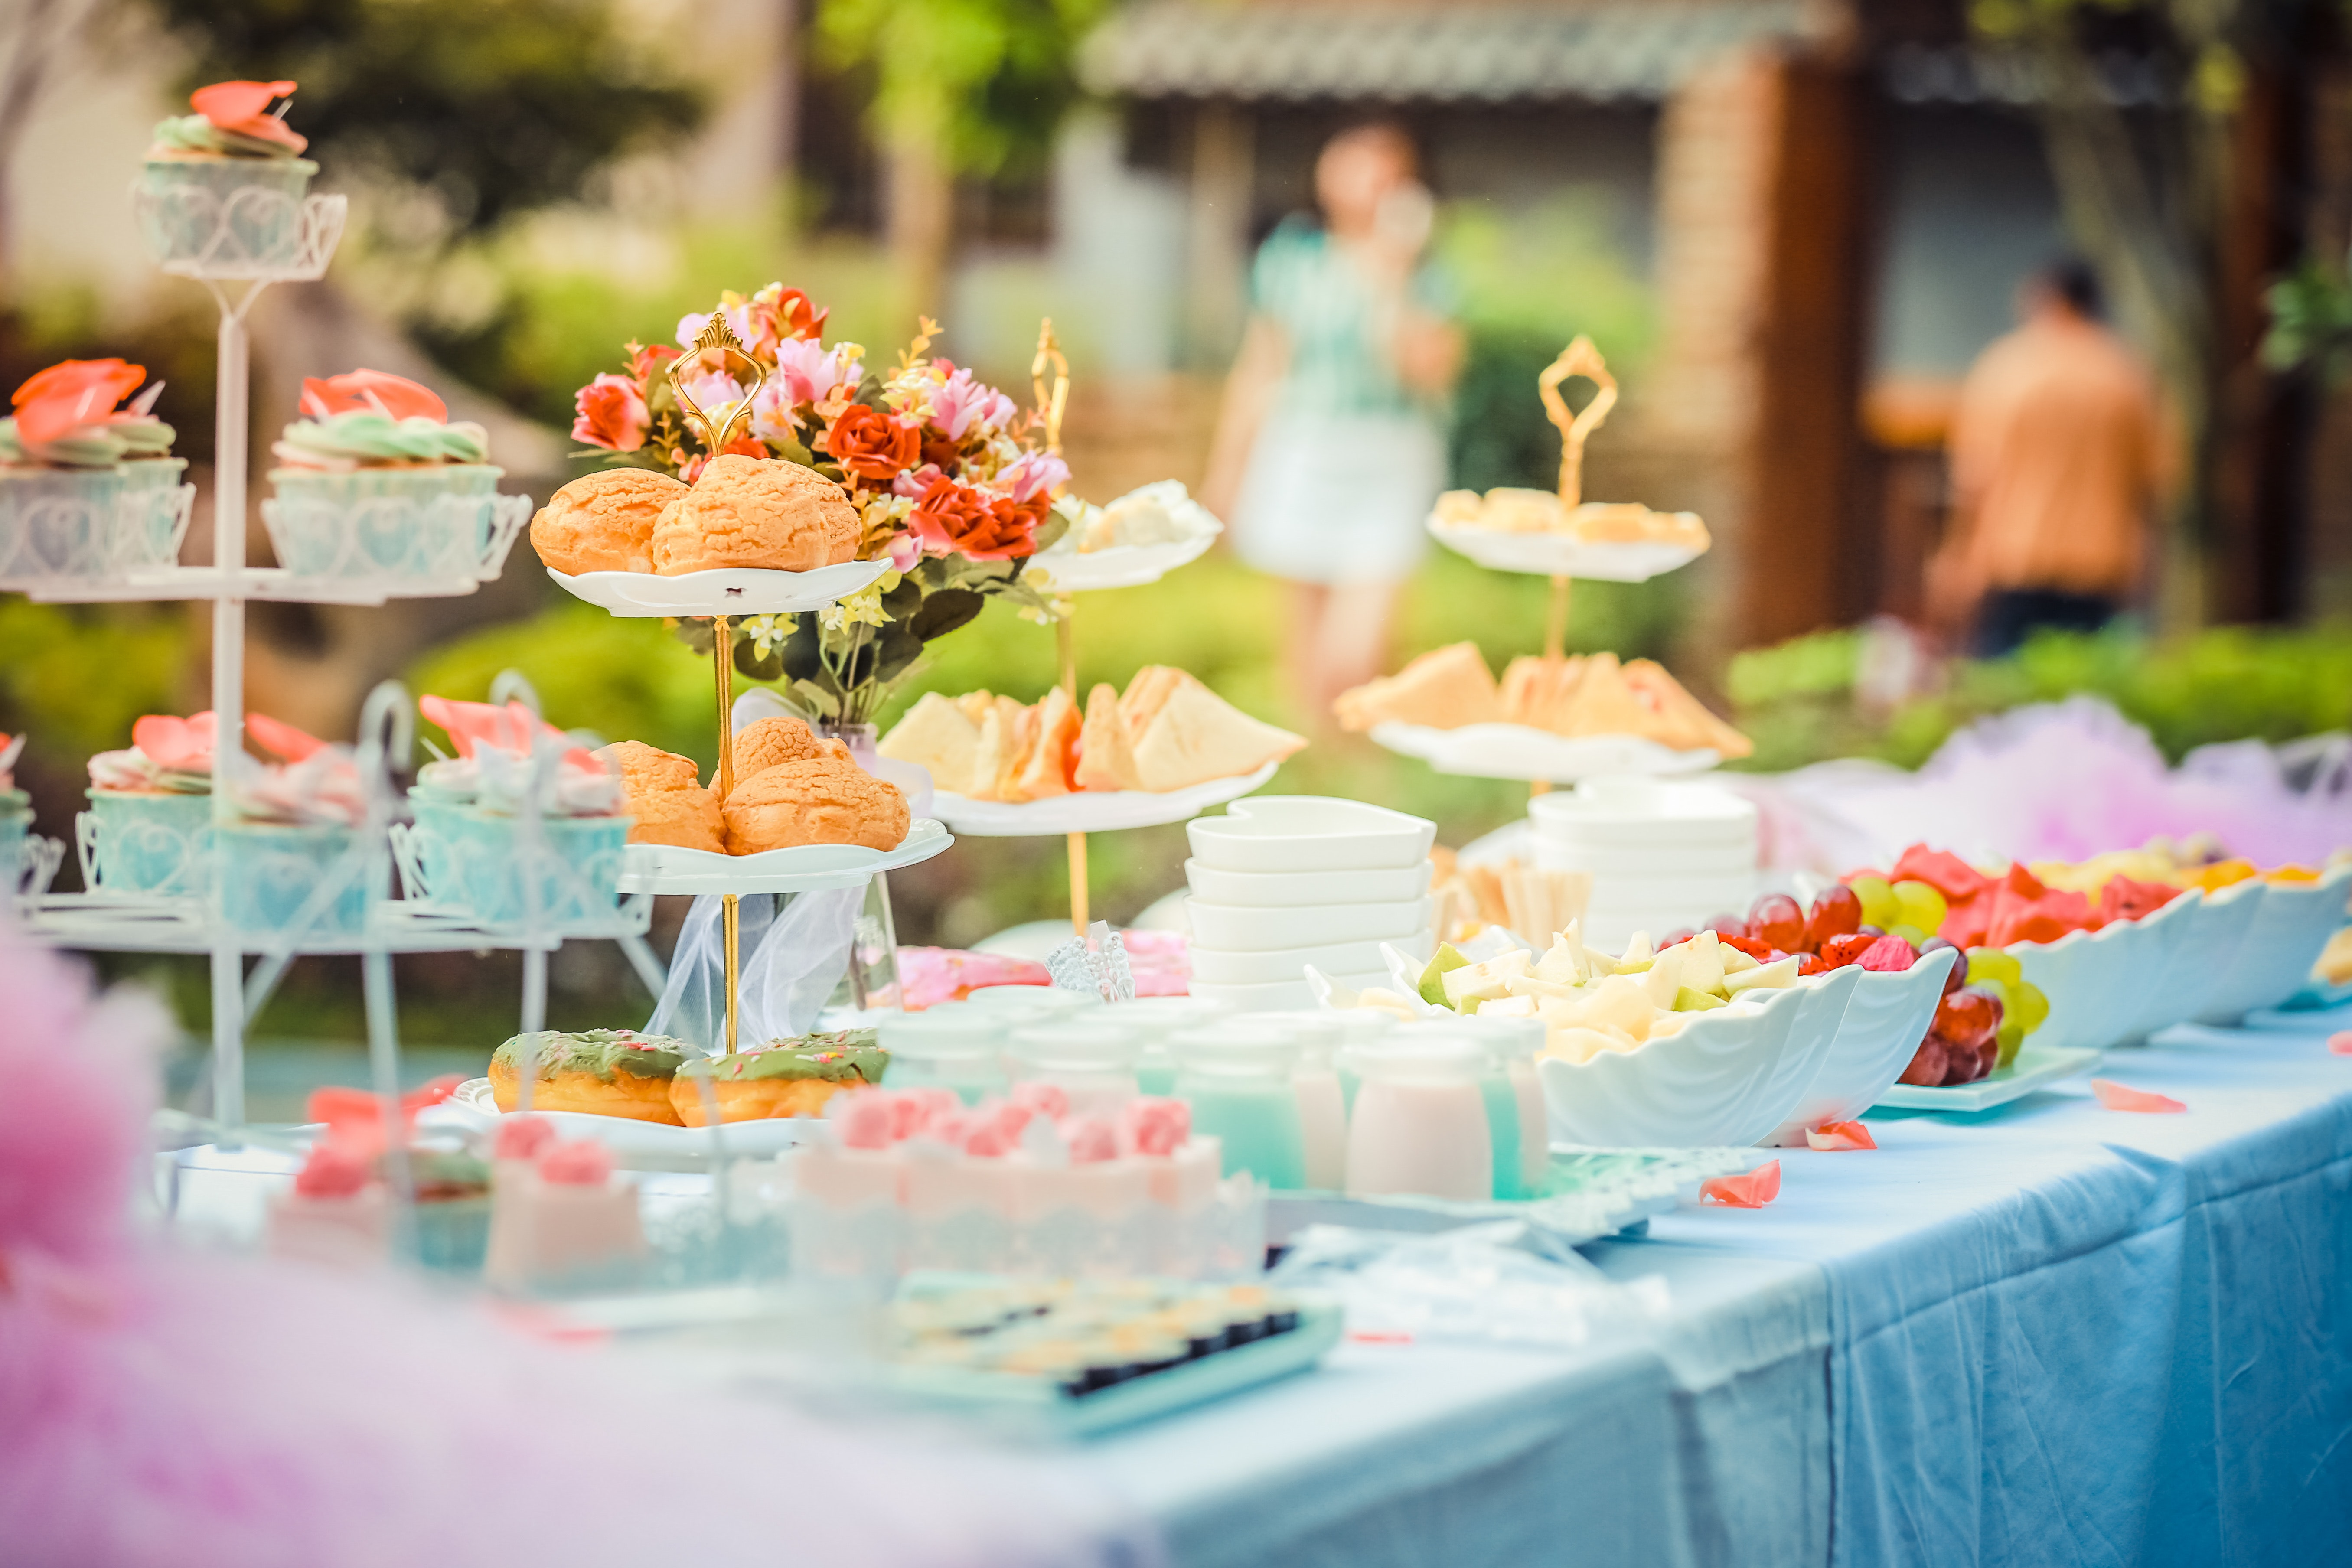 Five Exciting Summer Buffet Tips and Ideas